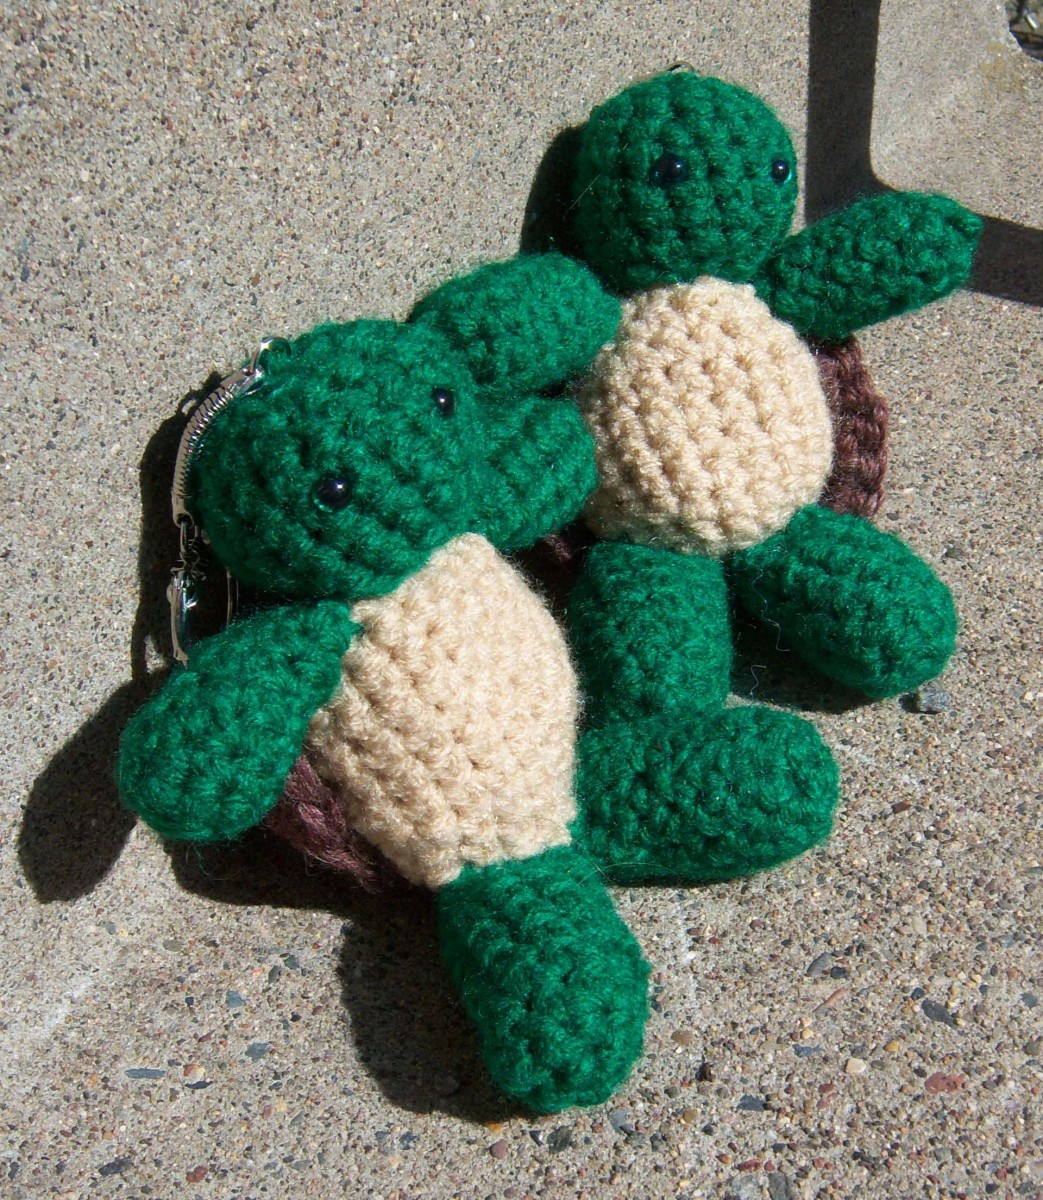 How to Crochet a Turtle Keychain